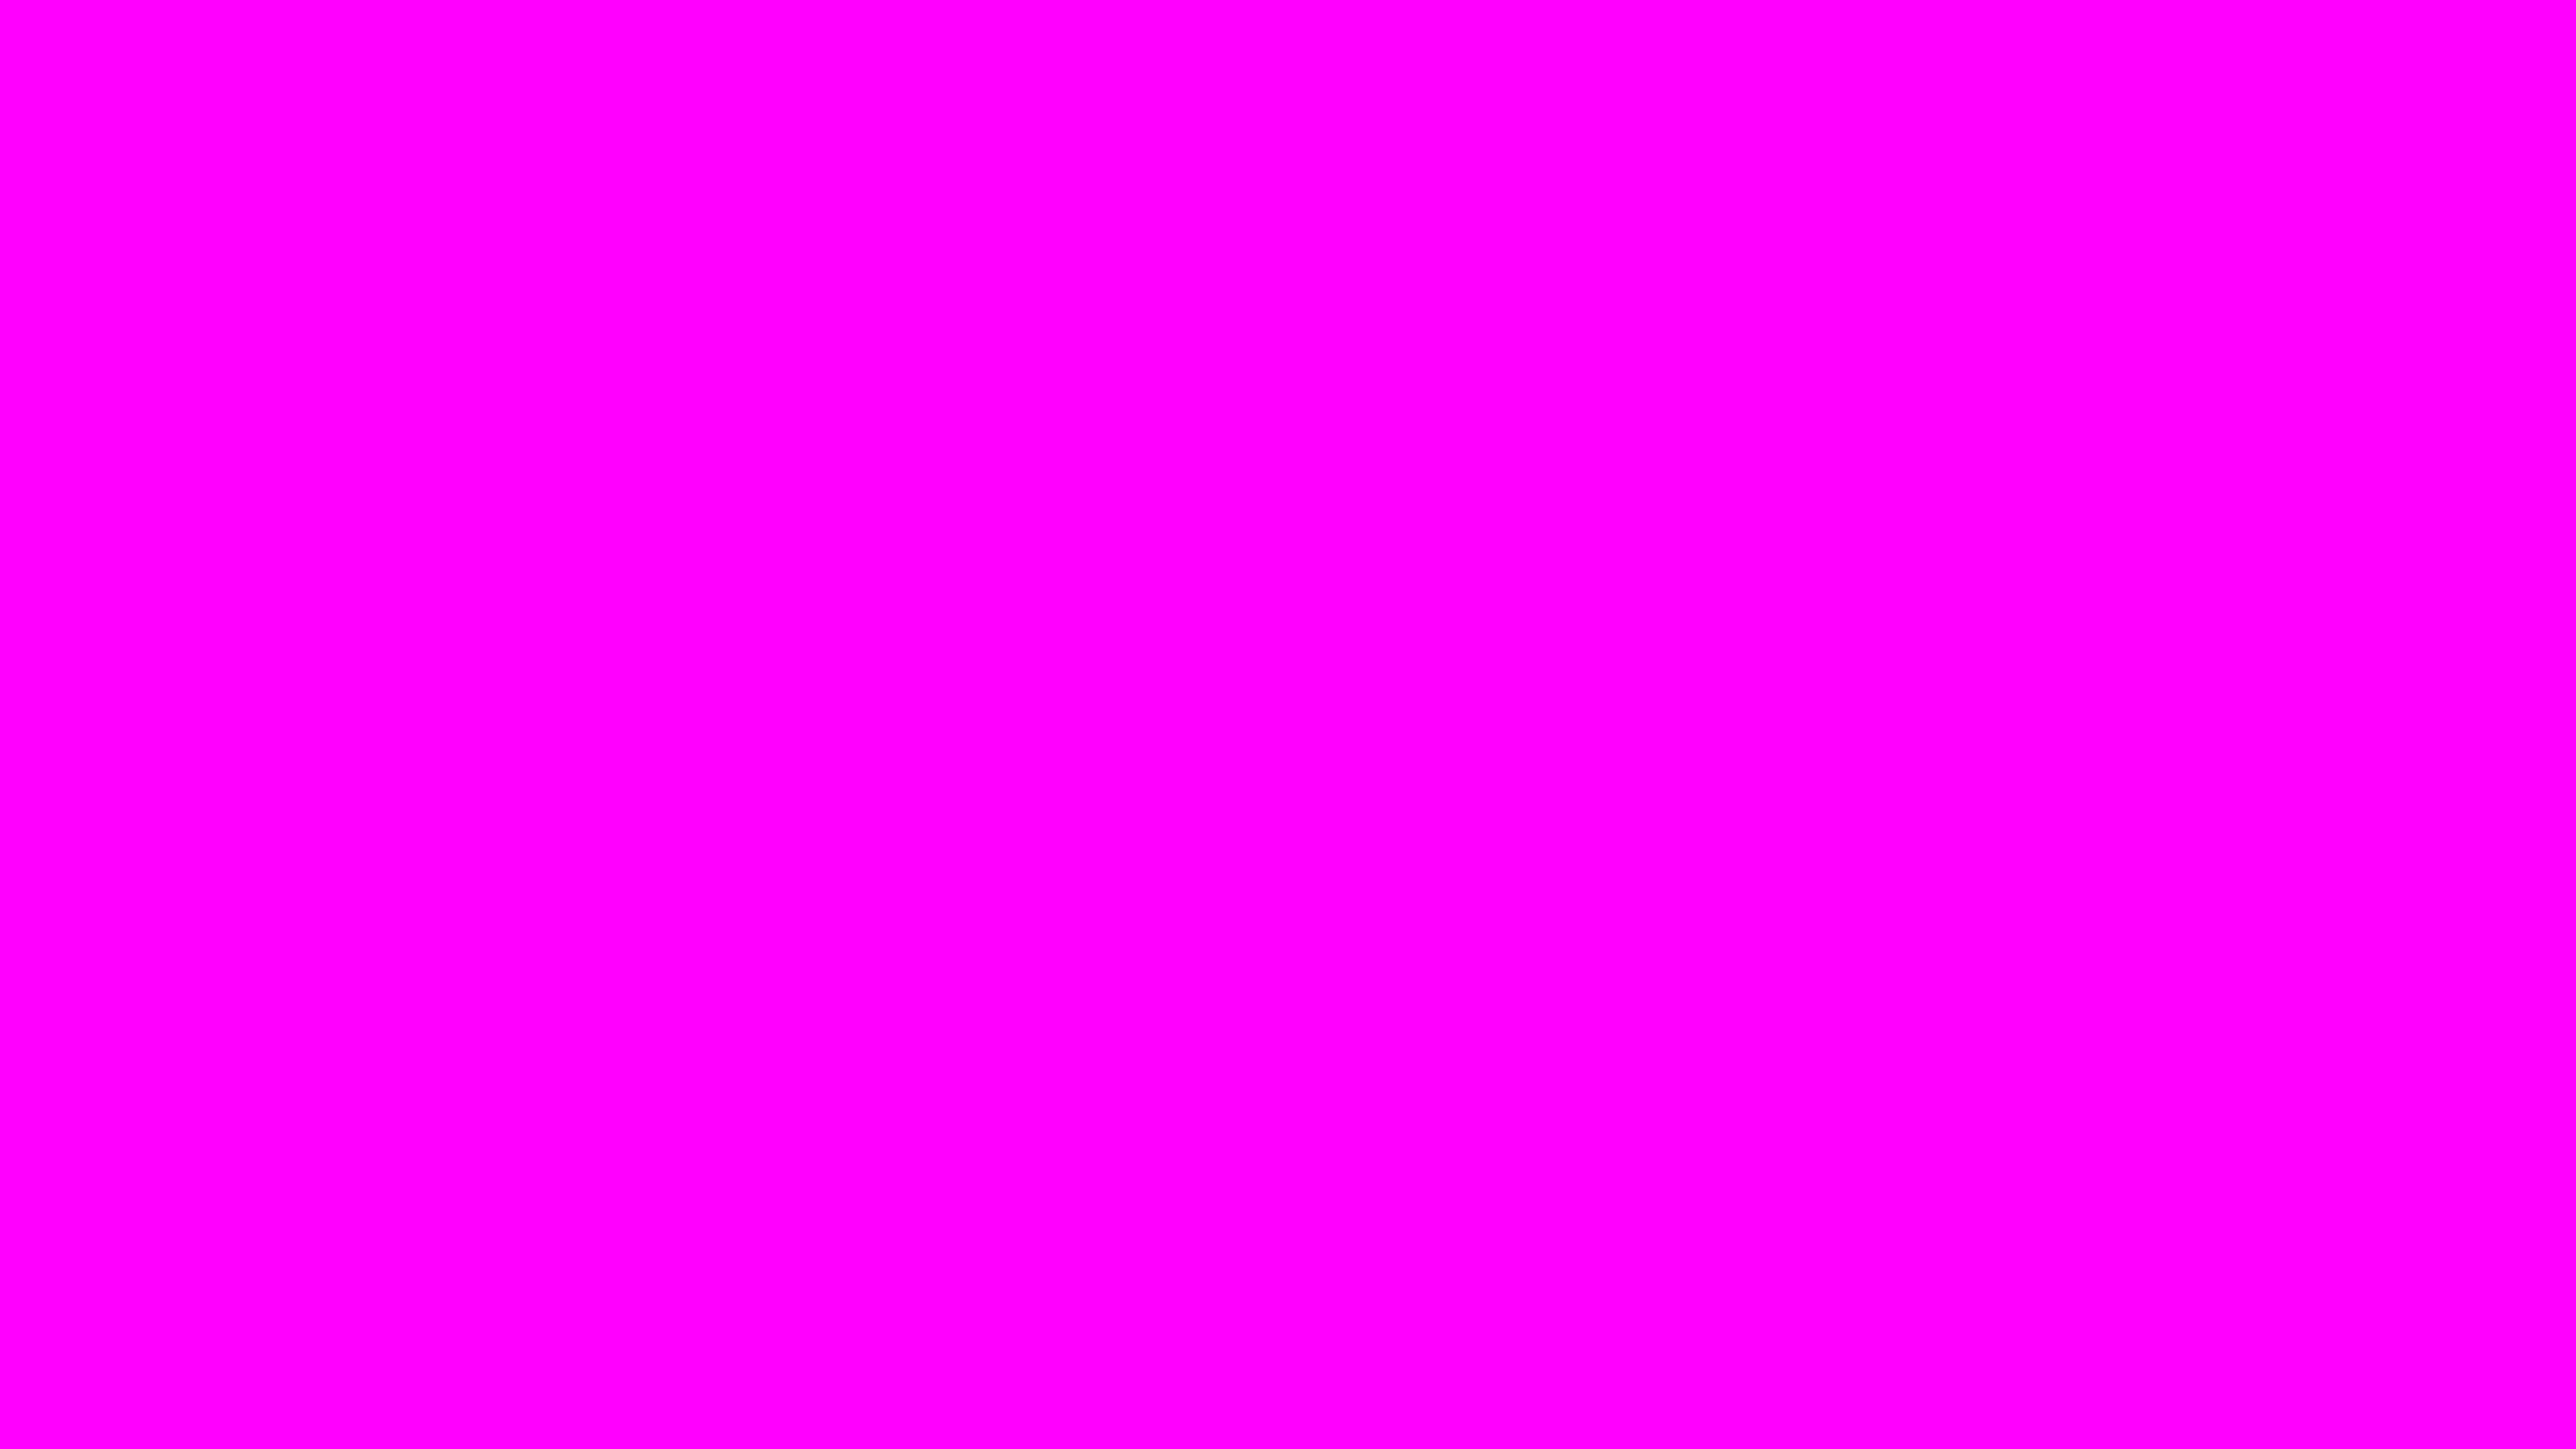 4096x2304 Fuchsia Solid Color Background